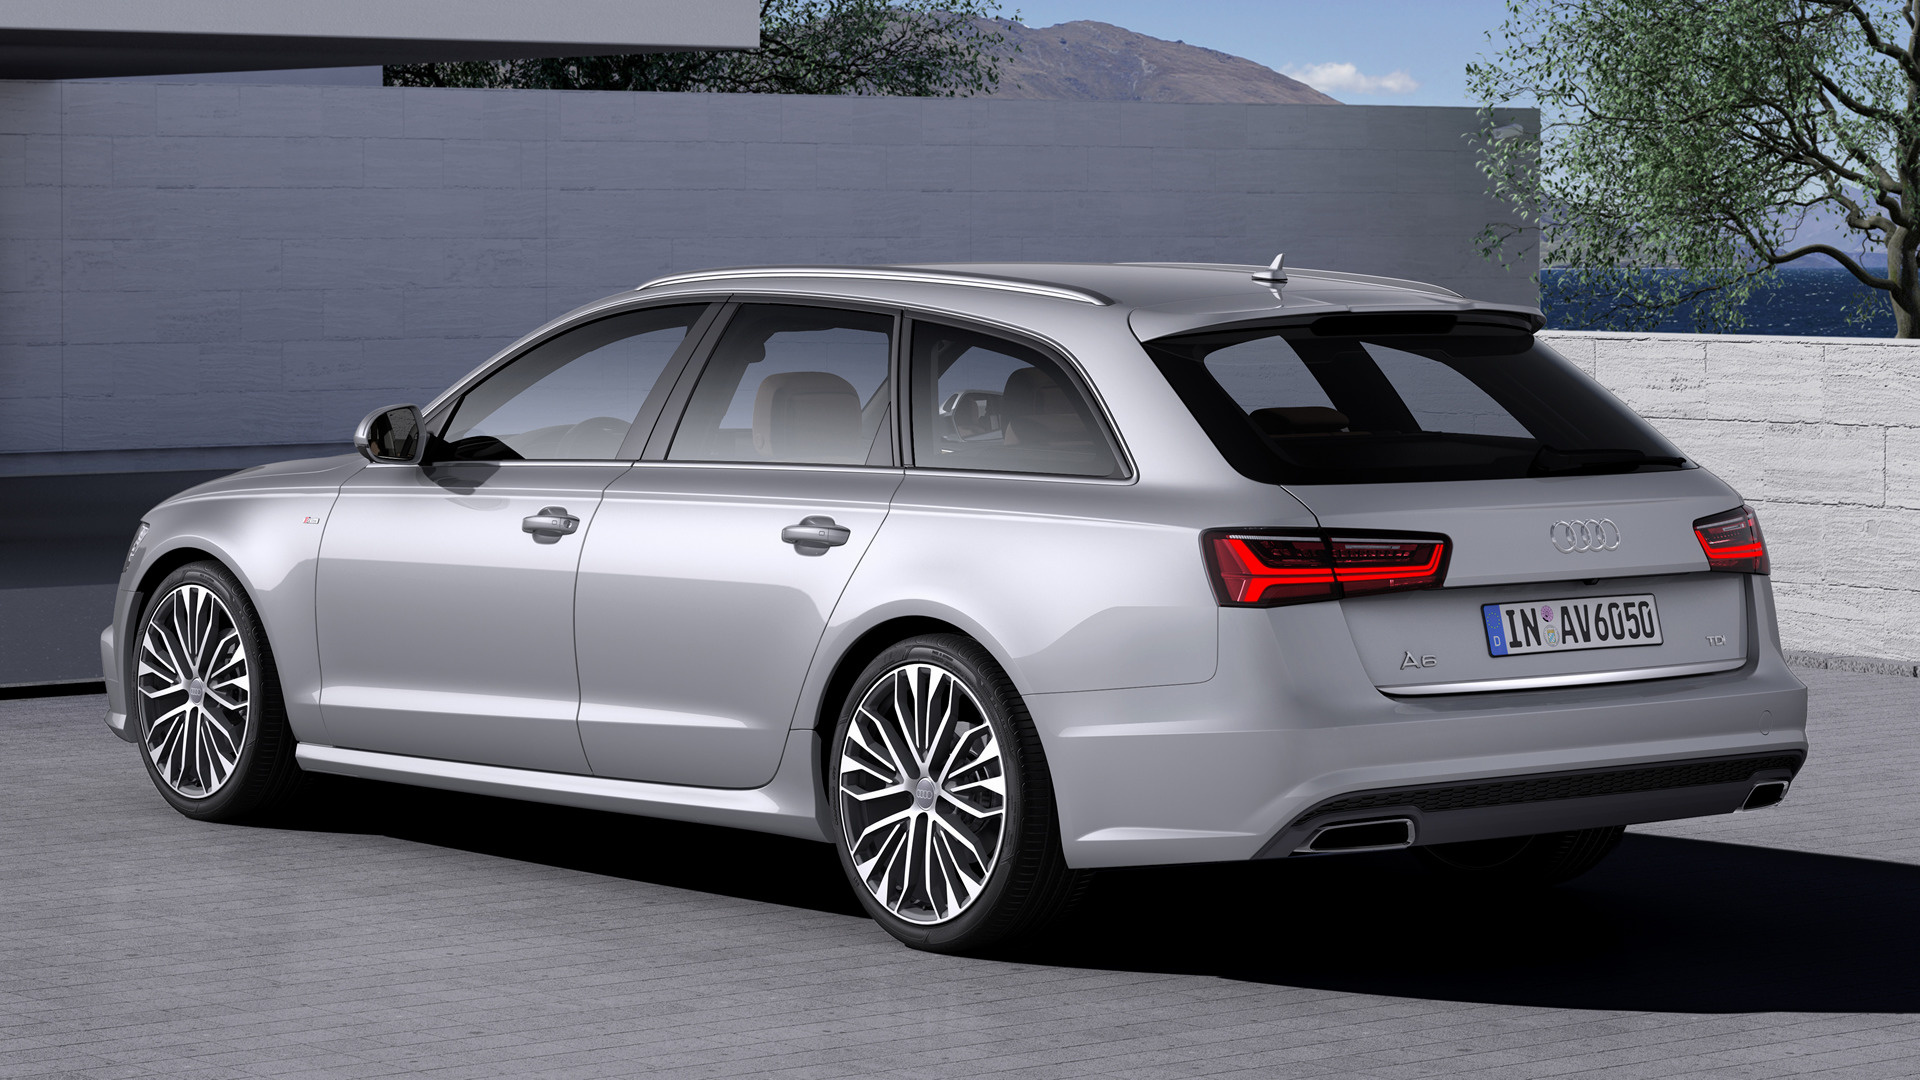 audi a6 avant s line 2014 wallpapers and hd images car. Black Bedroom Furniture Sets. Home Design Ideas